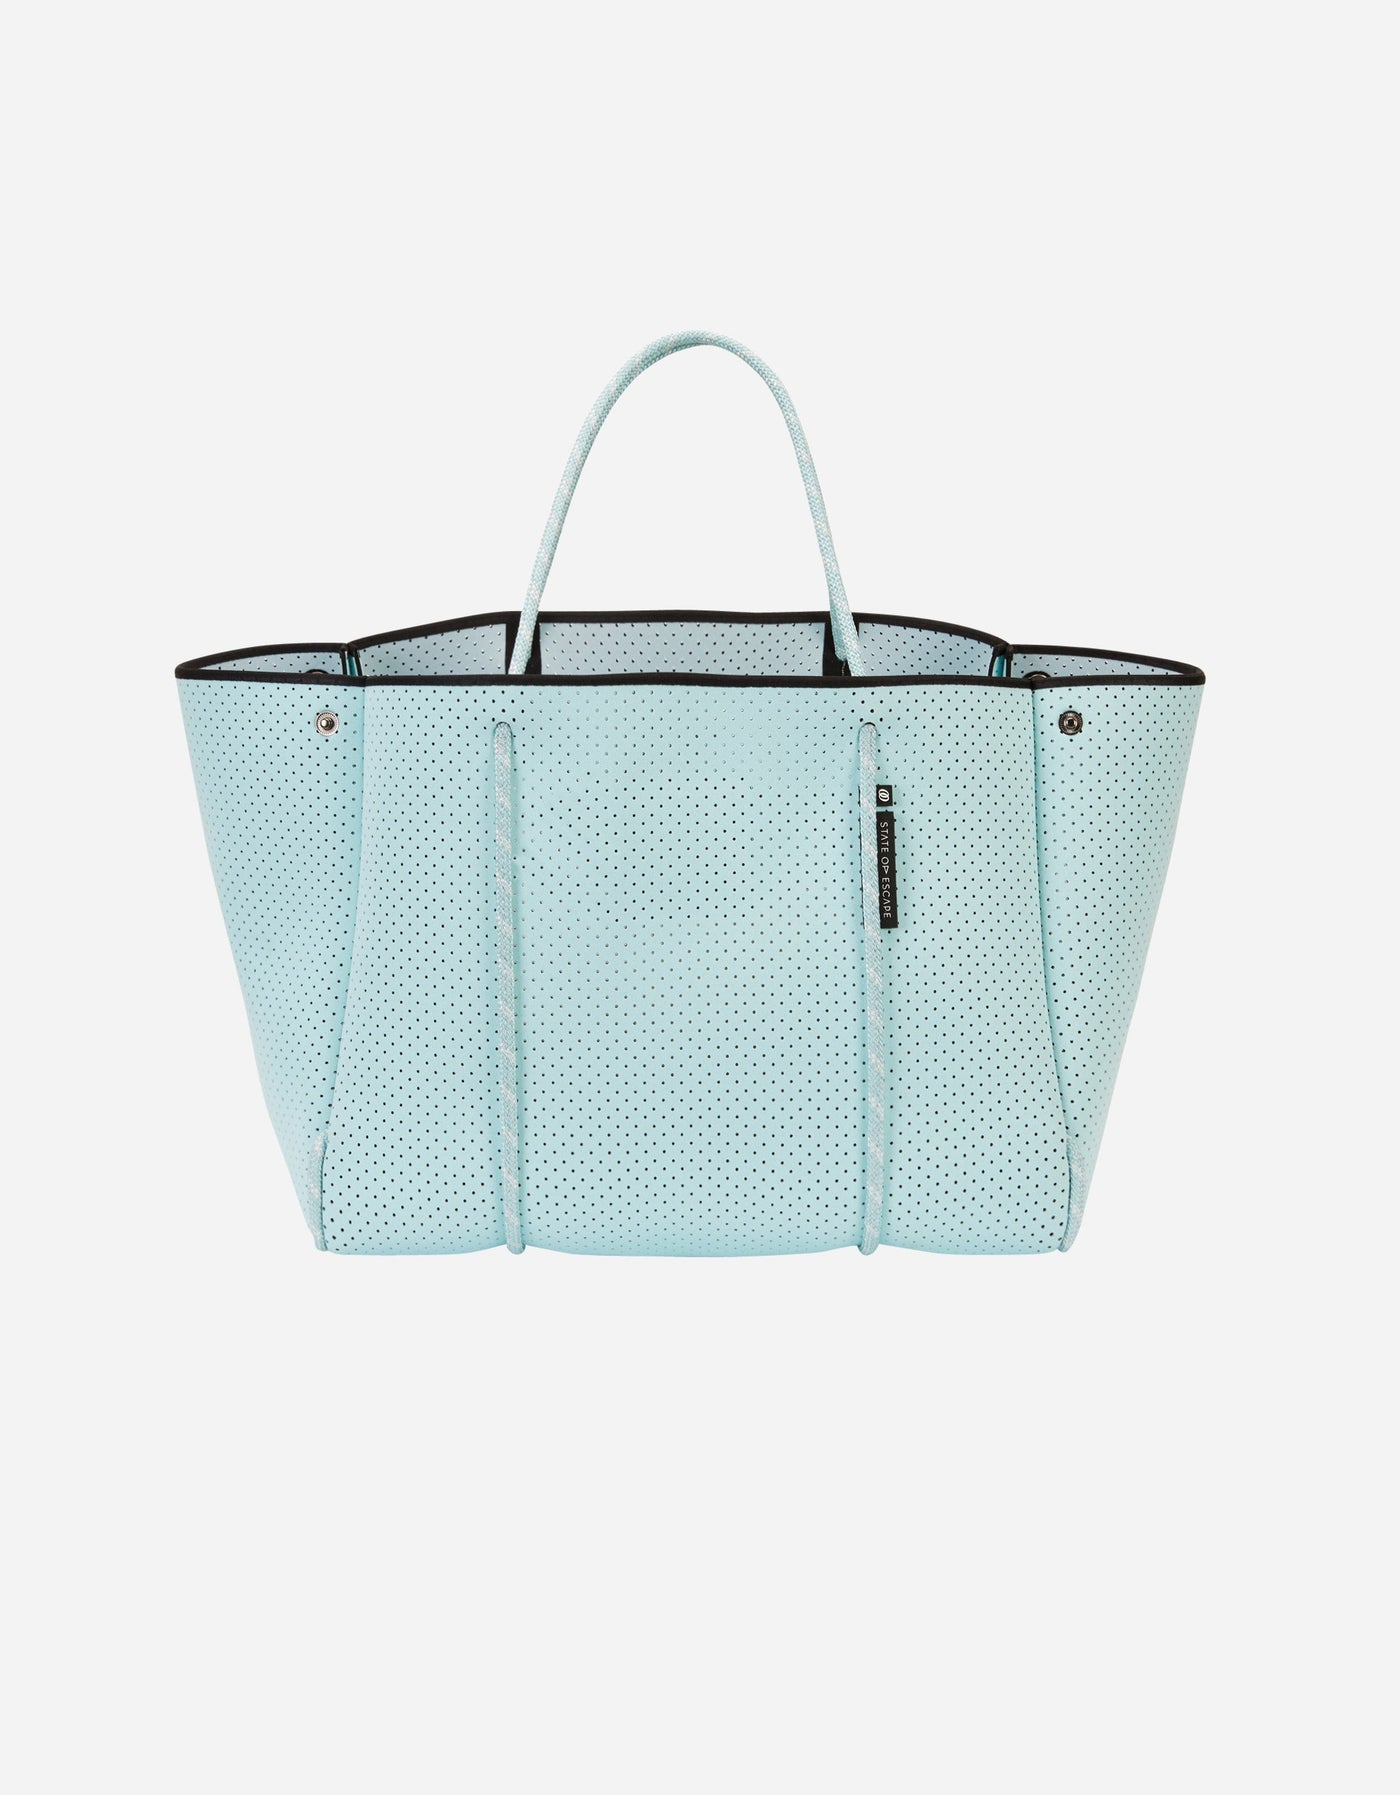 One&Only Reethi Rah Escape tote airy blue / crystal blue (dual tone)